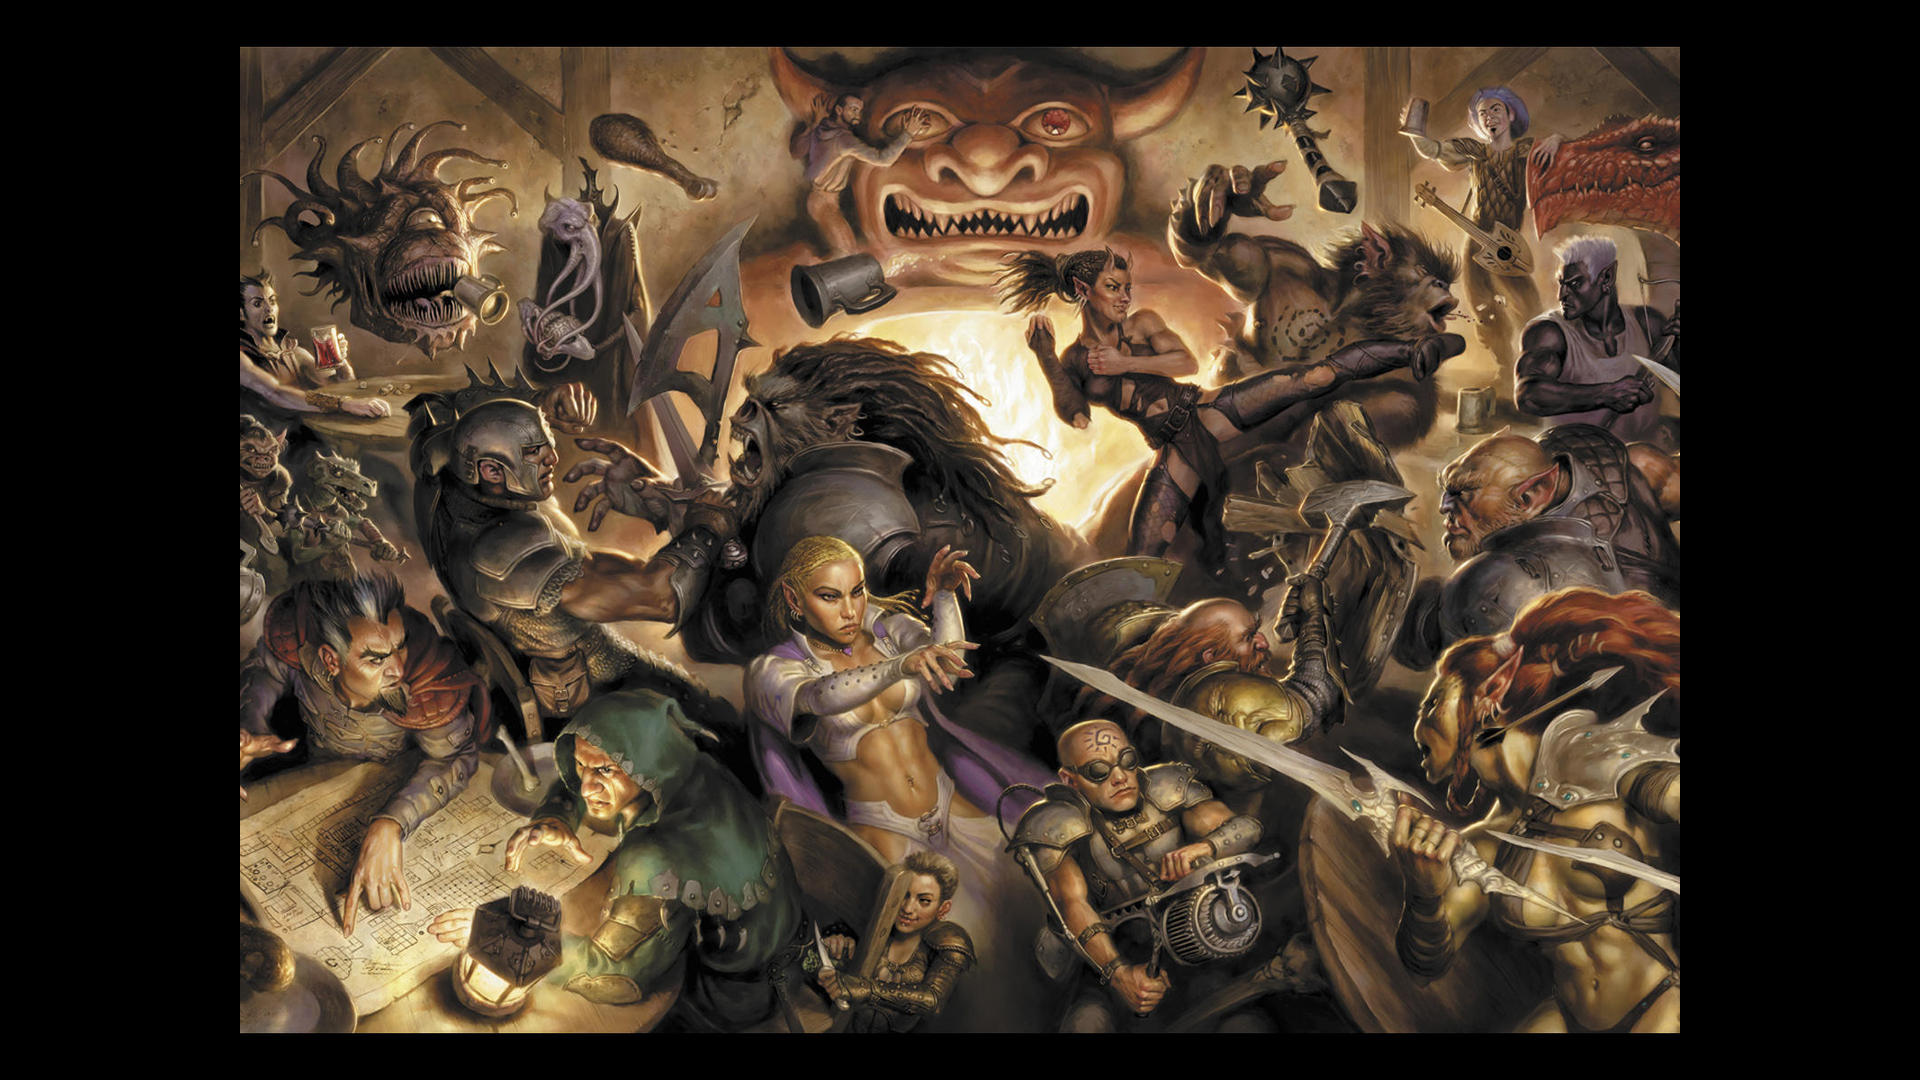 Dungeons And Dragons Wallpaper 1920x1080 Tavernbrawl wide jpg 1920x1080